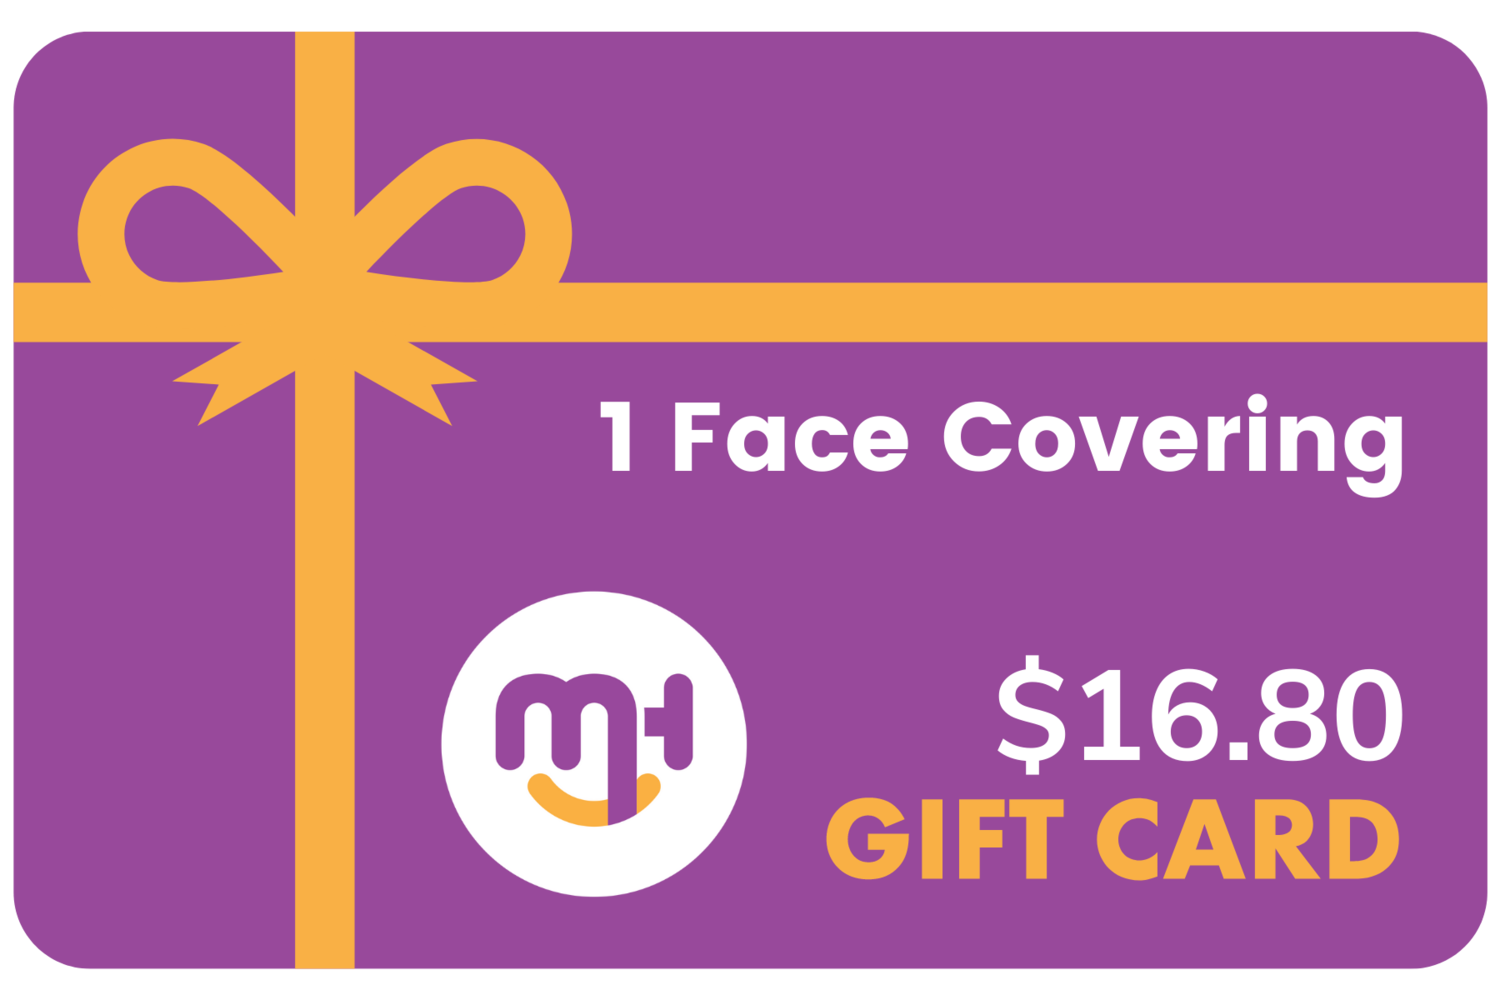 Give The Gift Of A Face Covering